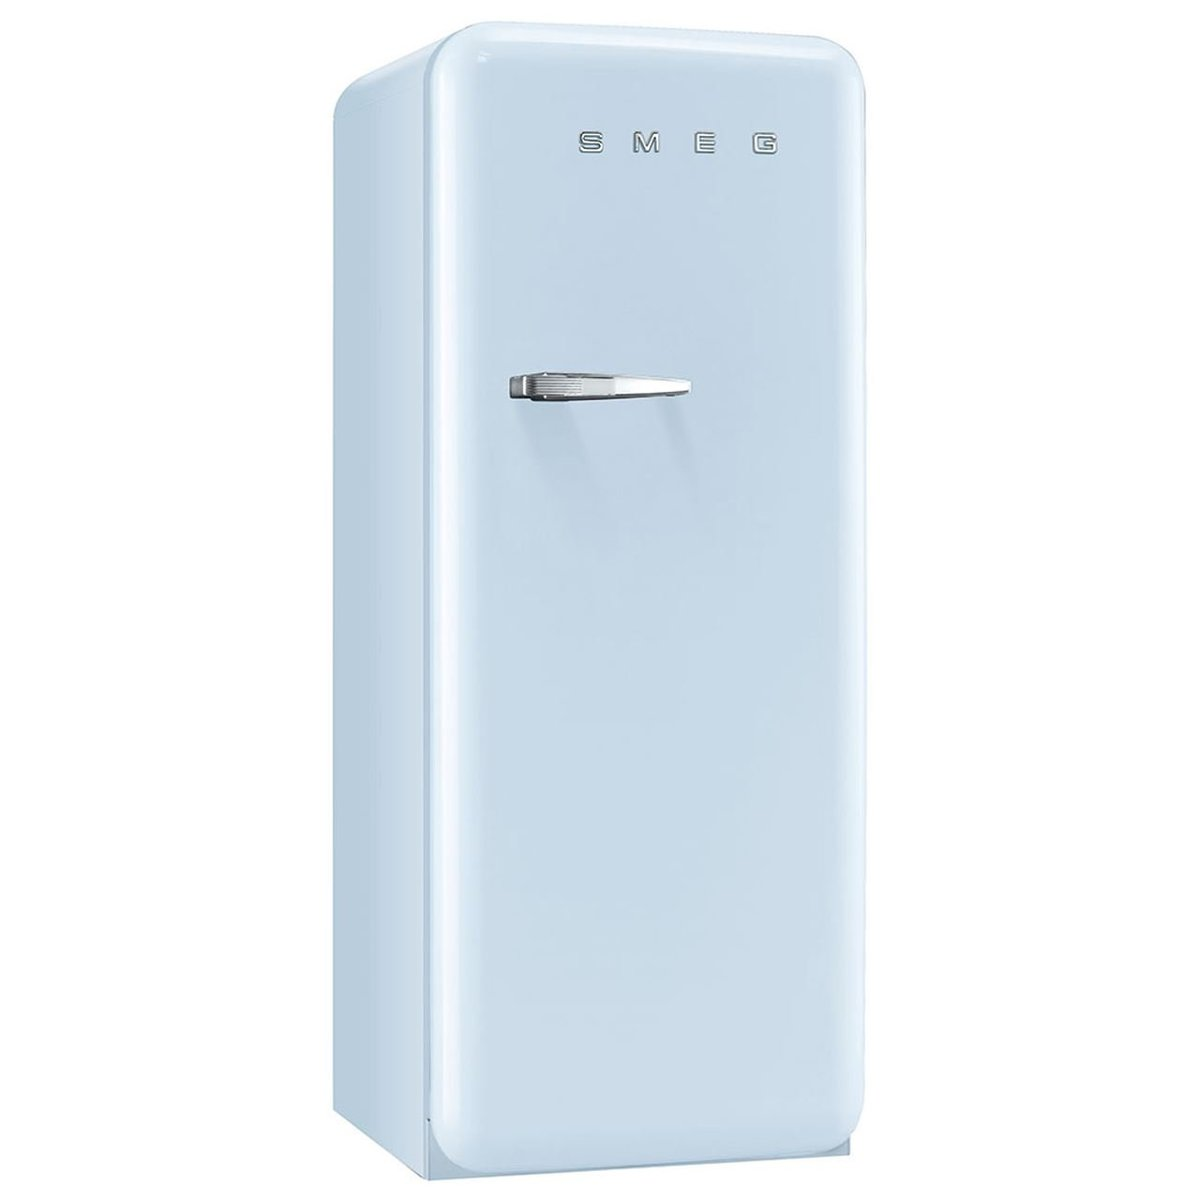 FAB28QAZ1, 50's style Refrigerator with ice compartment, Pastel Blue,Right hand hinge